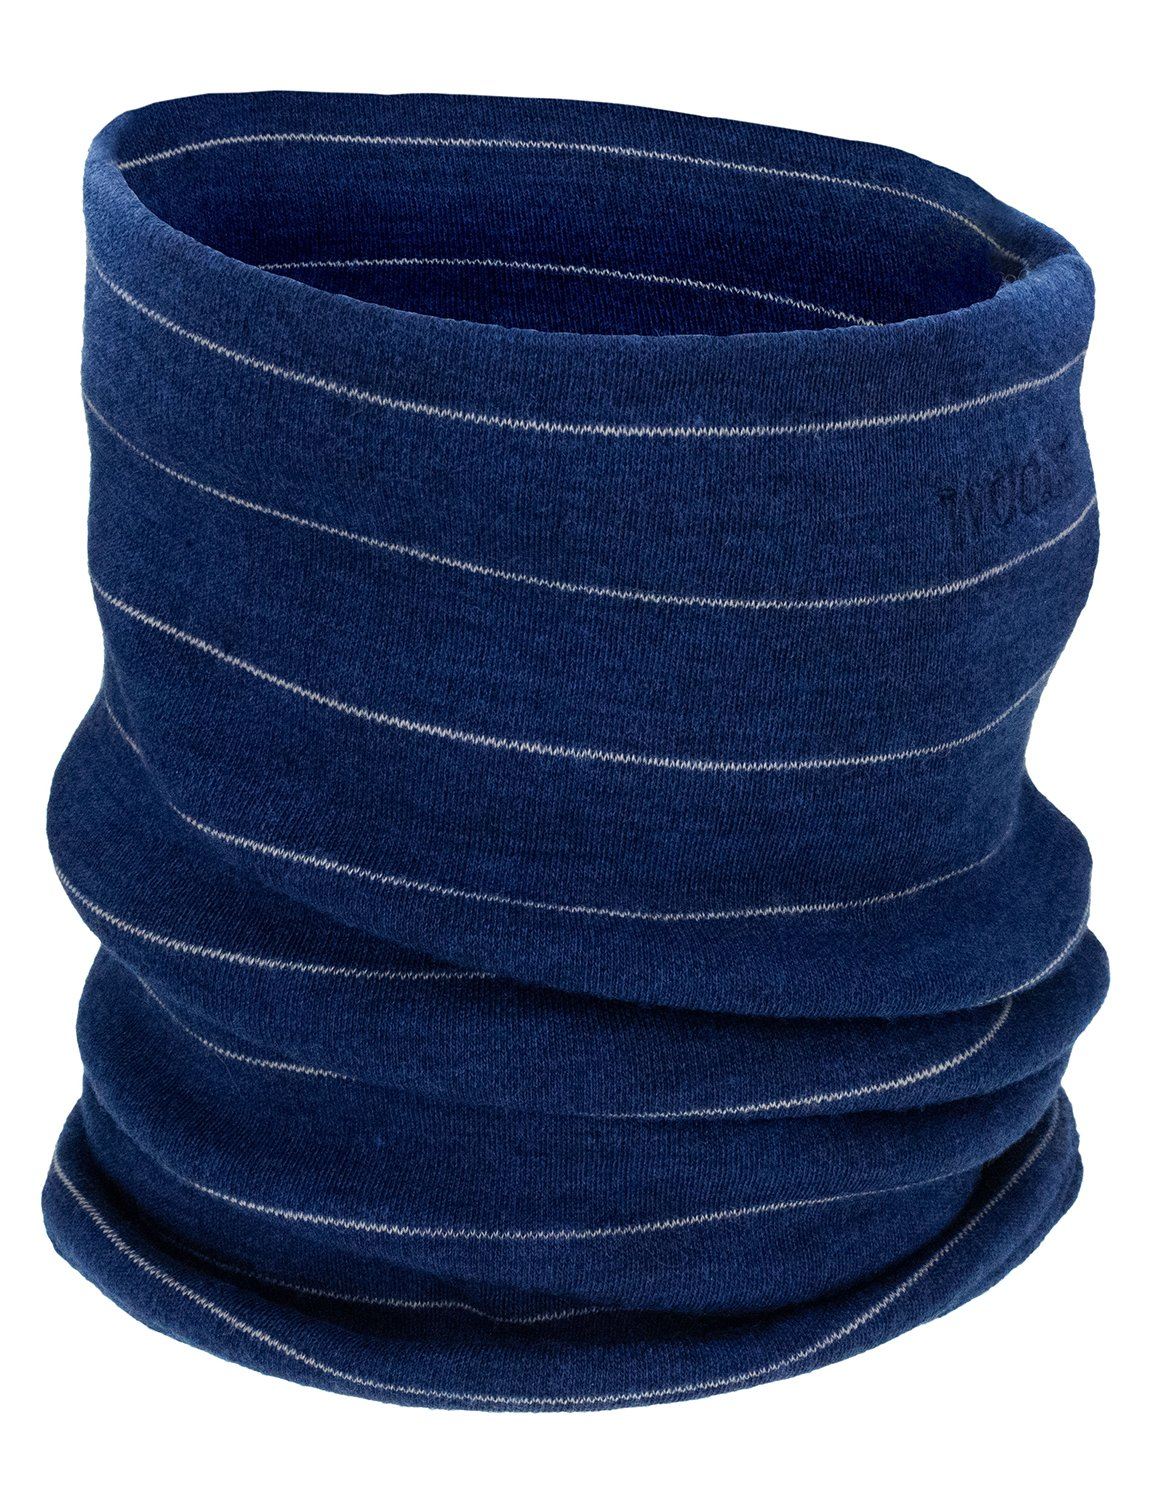 Woolx Unisex Merino Wool Neck Gaiter for Men & Women- Warm and Soft- Iceberg Navy